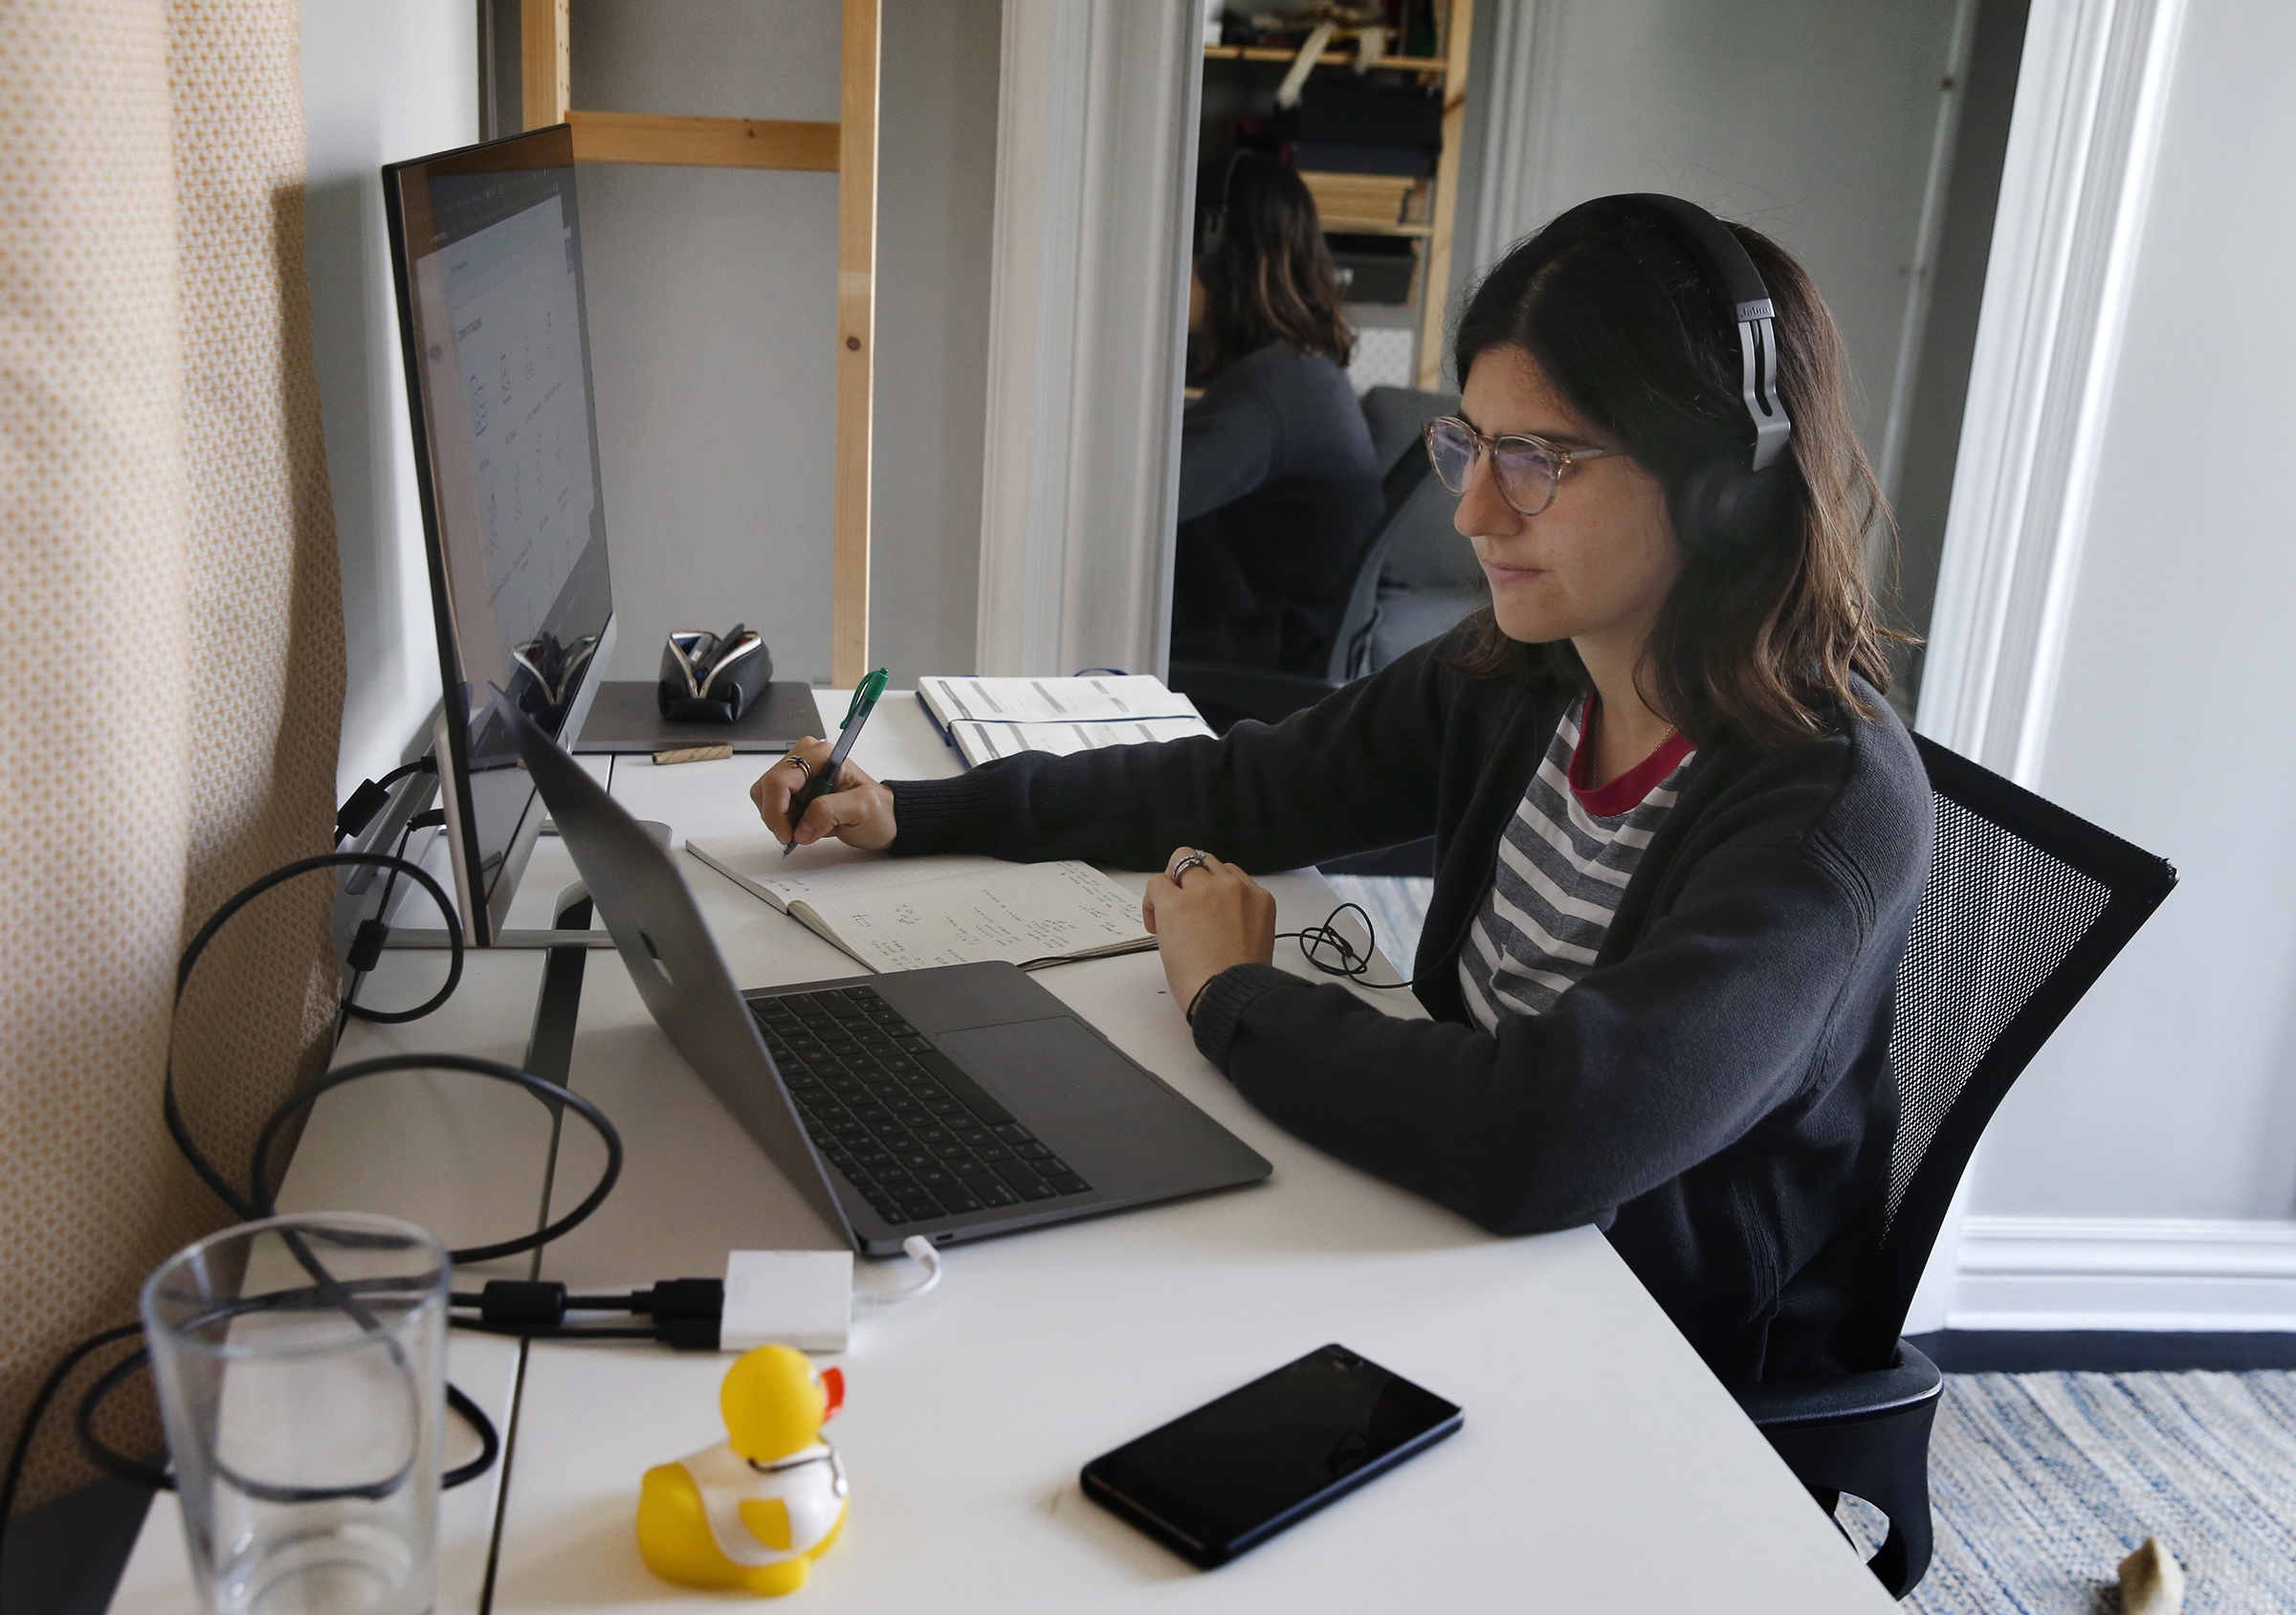 A person wearing headphones sits at a desk with a laptop computer and a flatscreen.